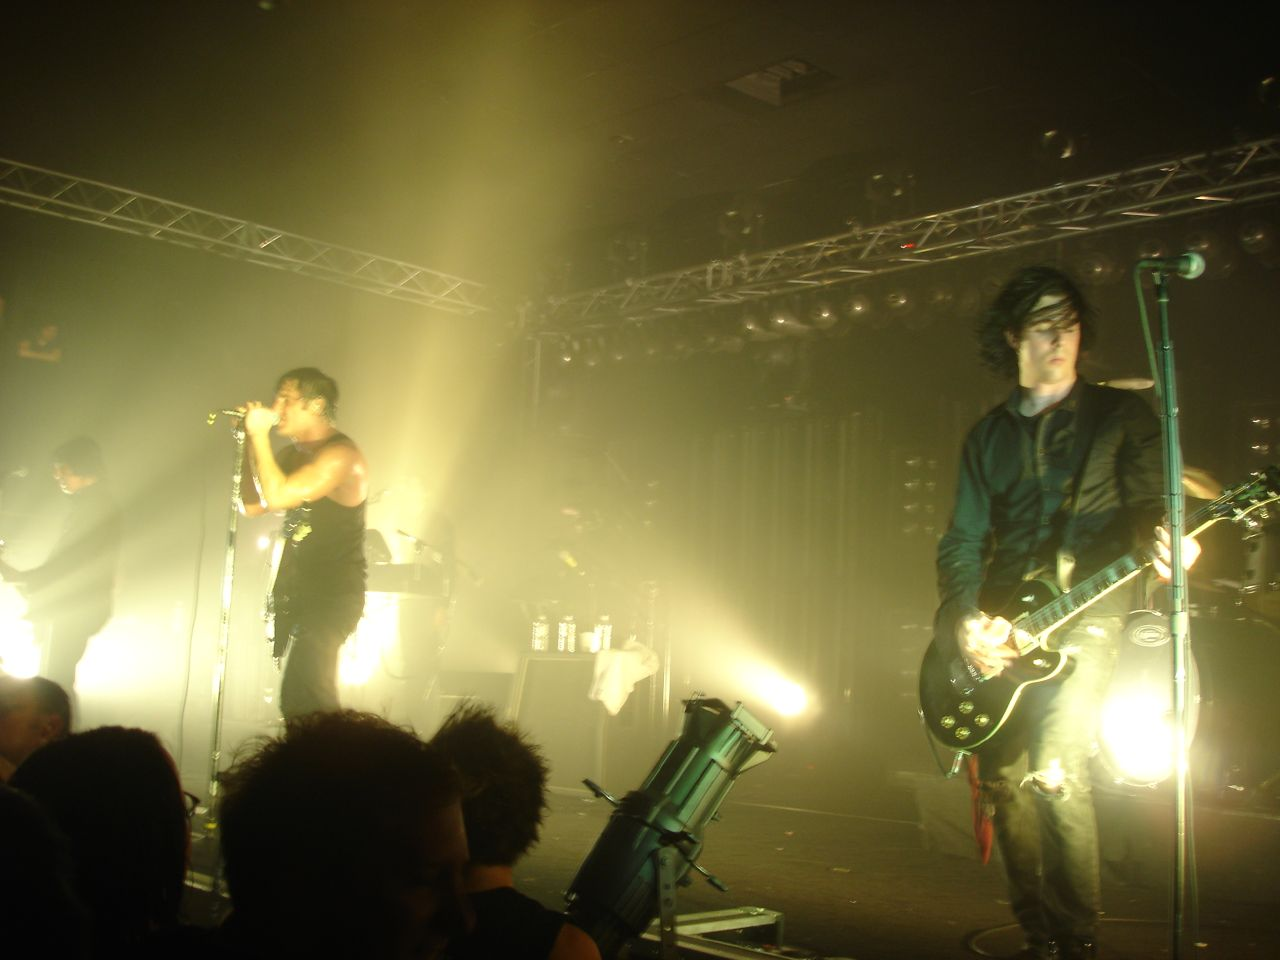 File:NineInchNails.jpg - Wikimedia Commons